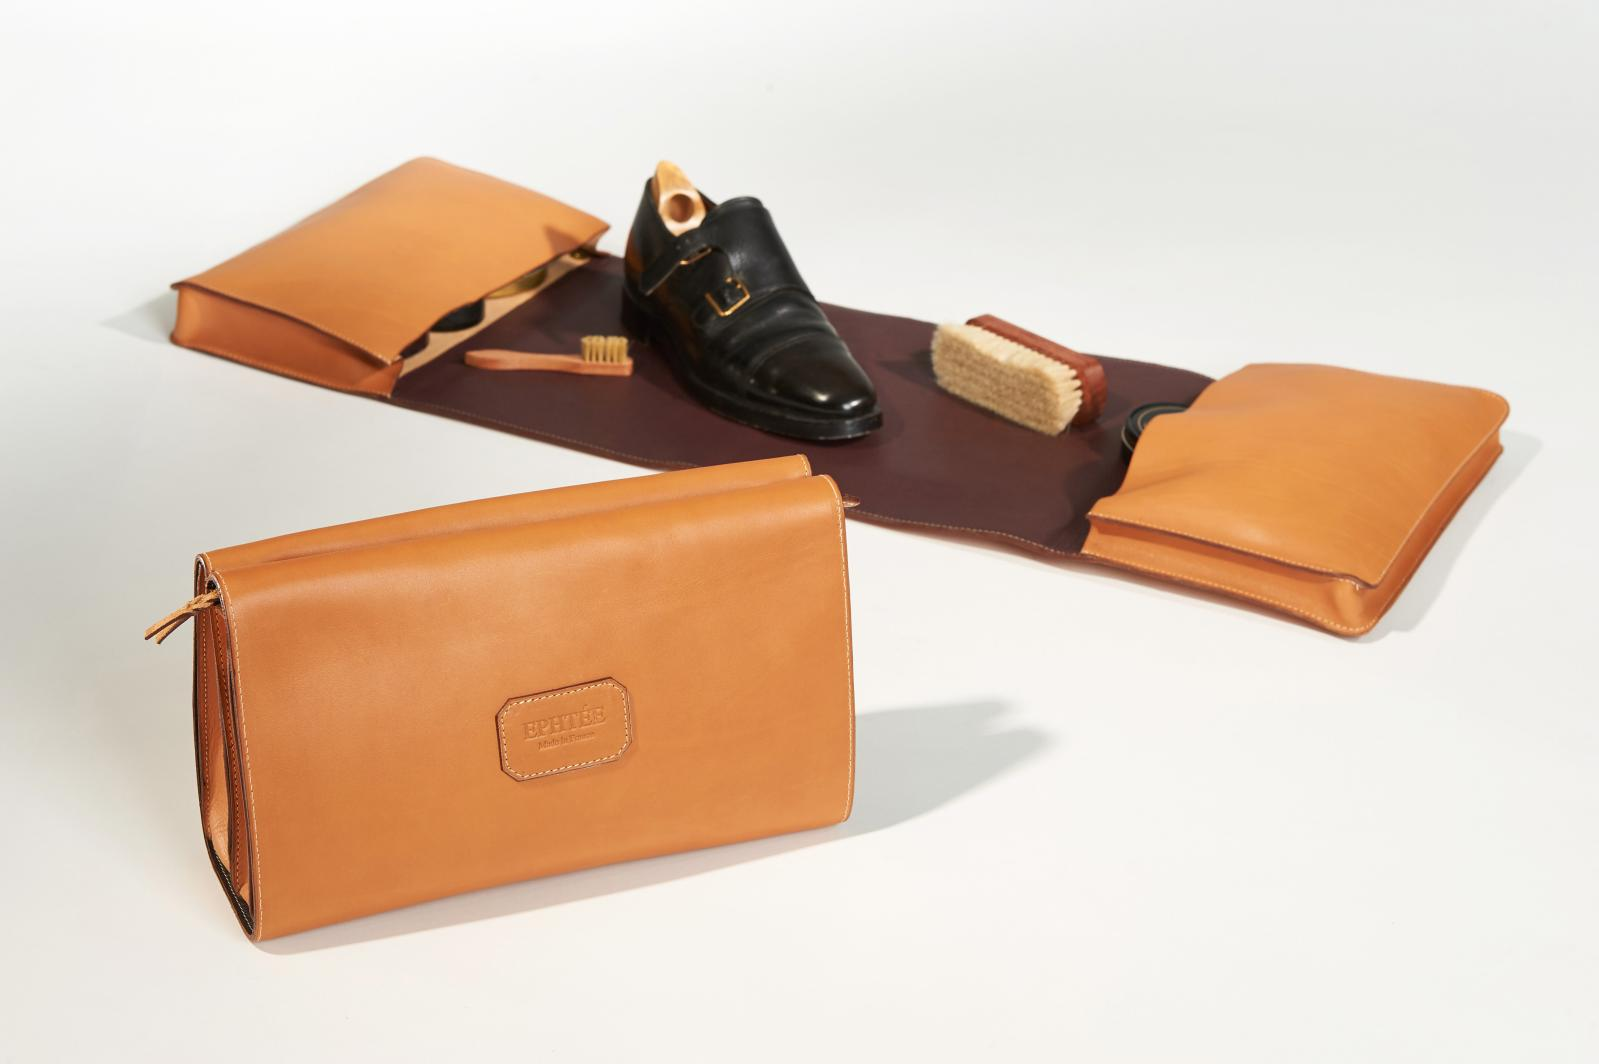 Leather case with integrated work mat.© Ephtée/Photo Alain Caboche